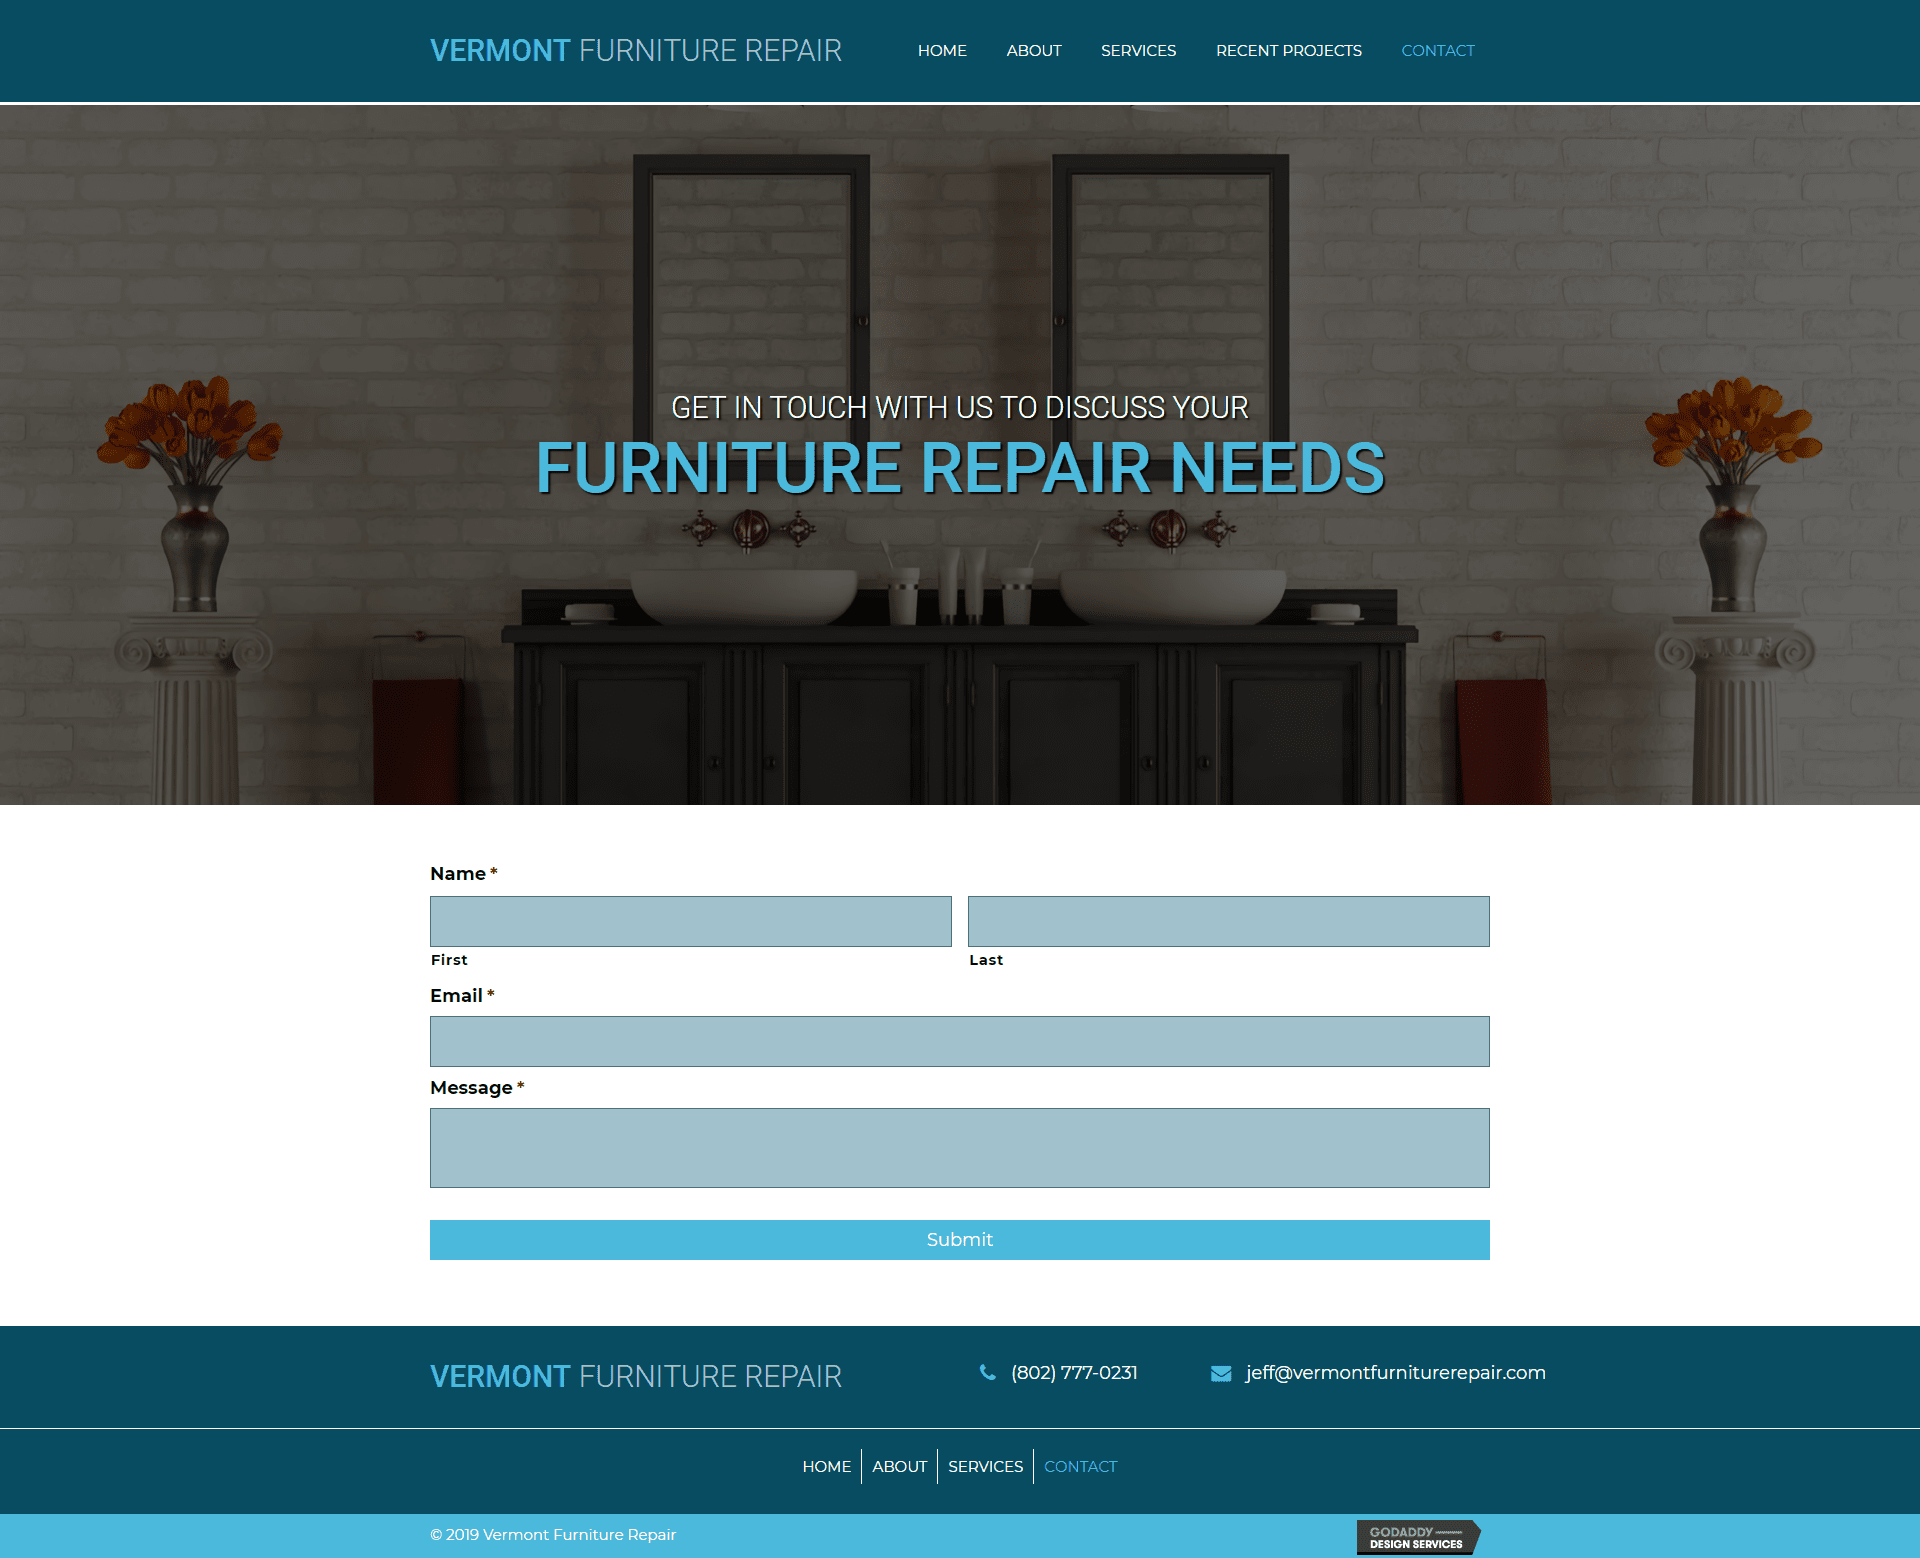 screencapture-vermontfurniturerepair-contact